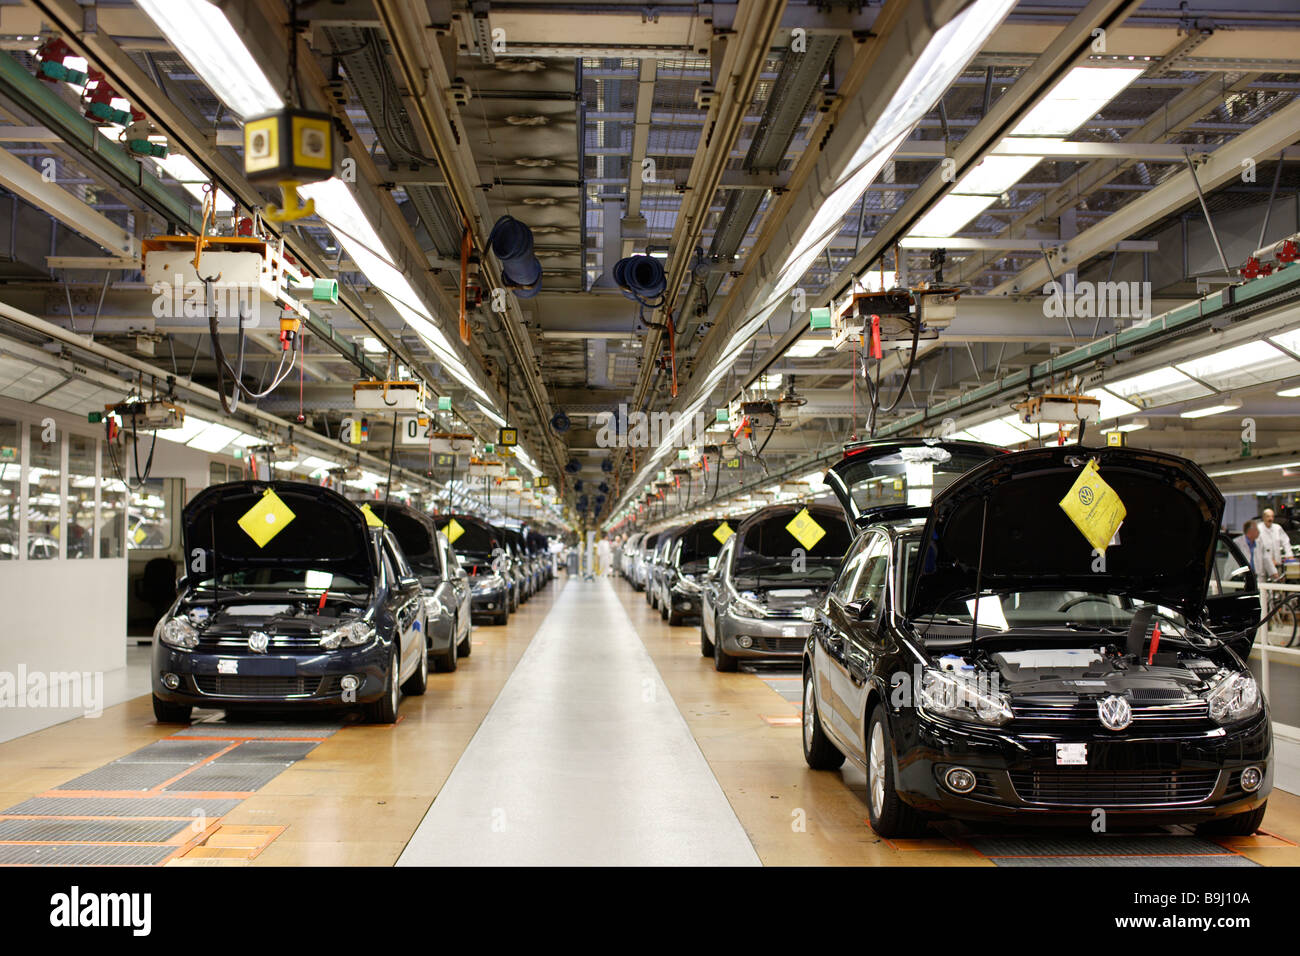 golf car production vw werk wolfsburg vw car factory wolfsburg stock photo royalty free image. Black Bedroom Furniture Sets. Home Design Ideas